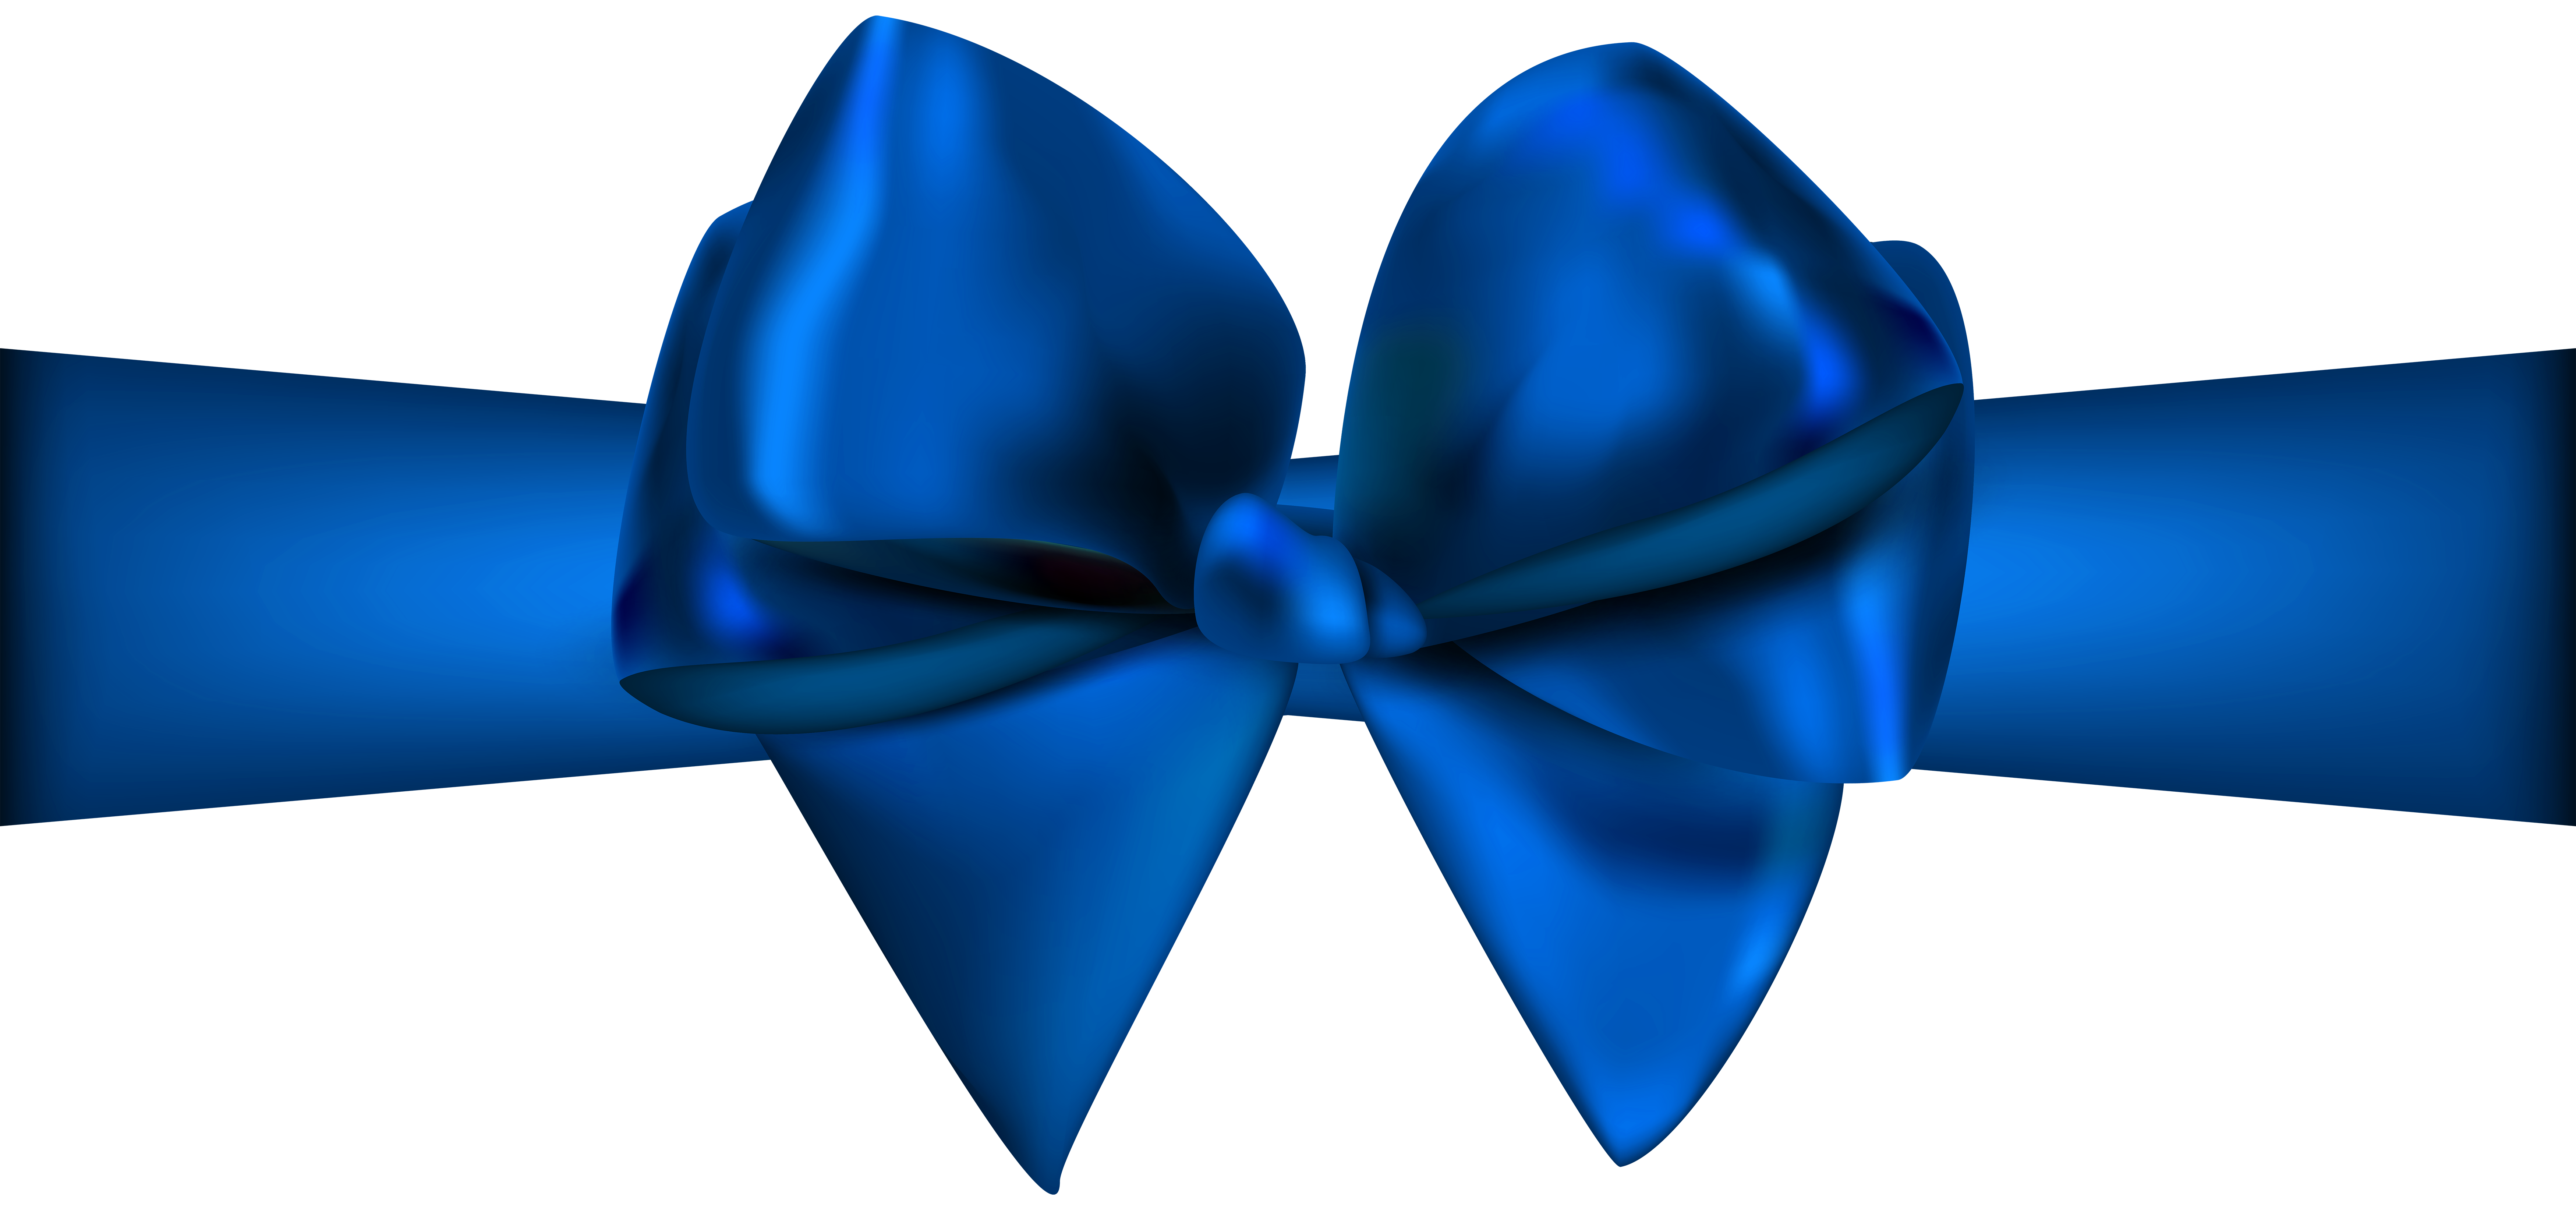 Navy Blu Side Bo Blue Ribbon With Bow Png Clip Art Best Web Clipart Ribbon Png Ribbon Clipart Clip Art